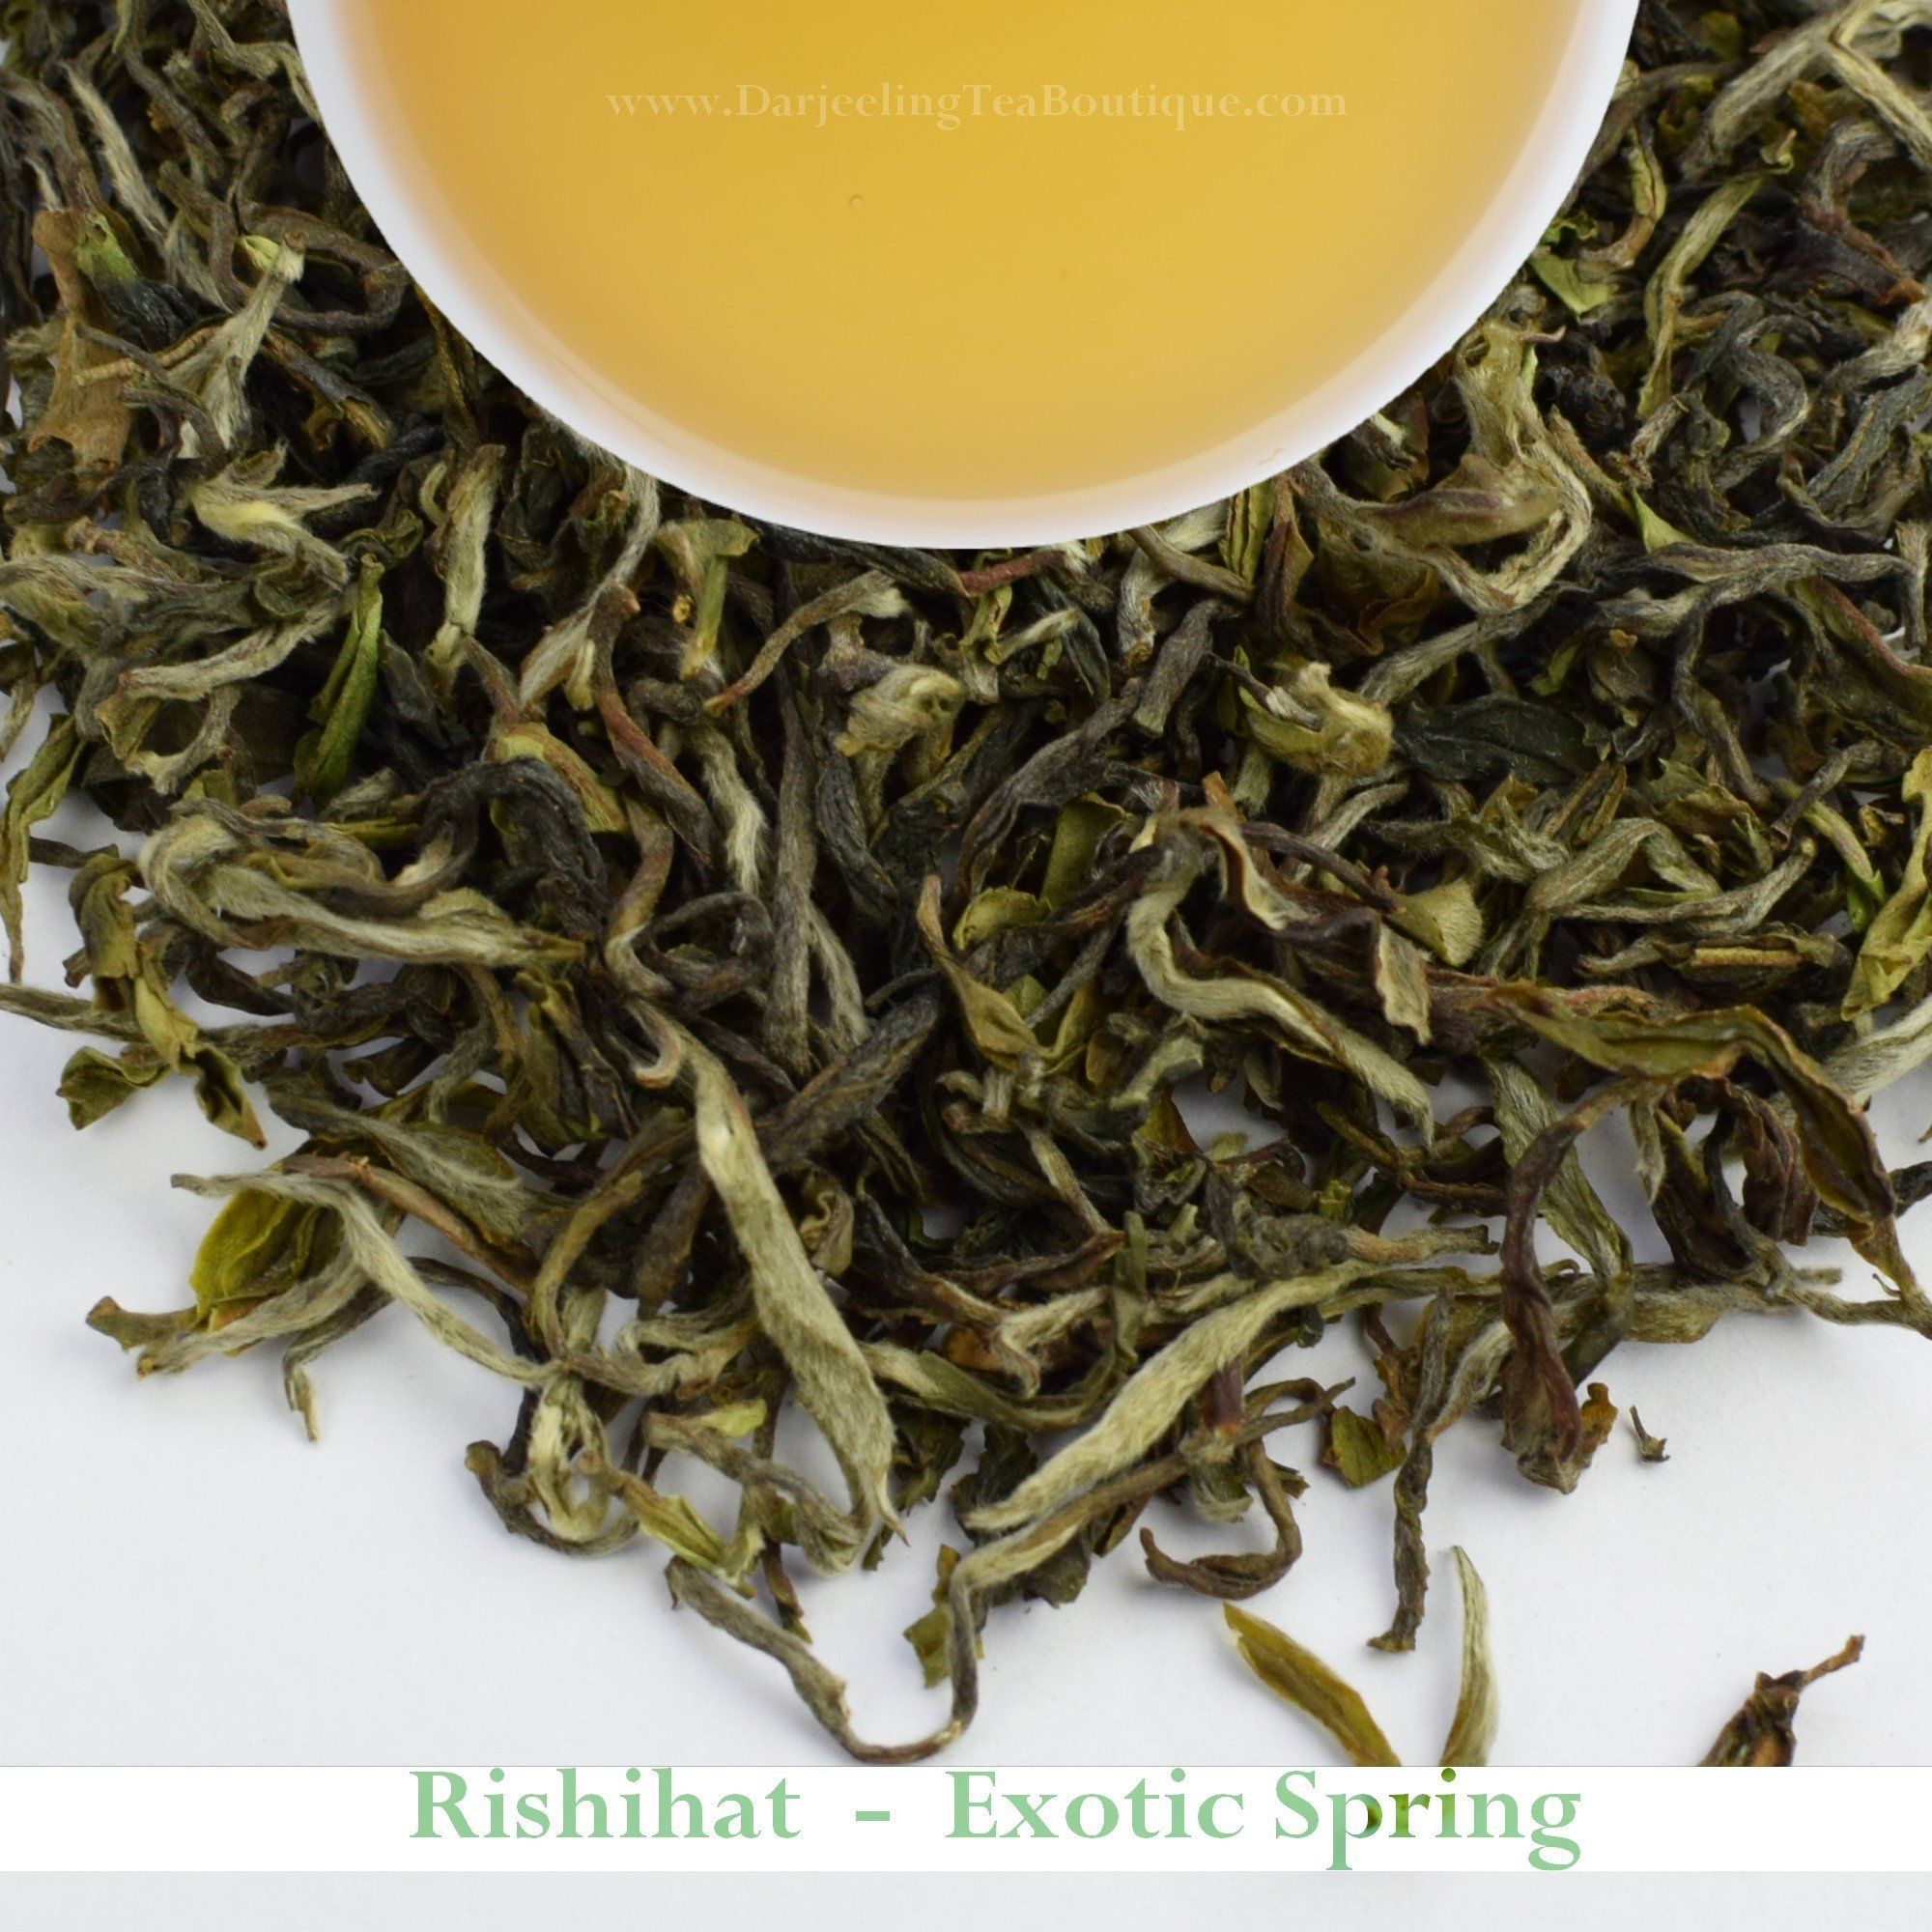 2017 - Rishihat Spring Exotica - Darjeeling First Flush Tea | 500gm (17.63oz) | Organic Indian Black Tea | China Cultivar | Darjeeling